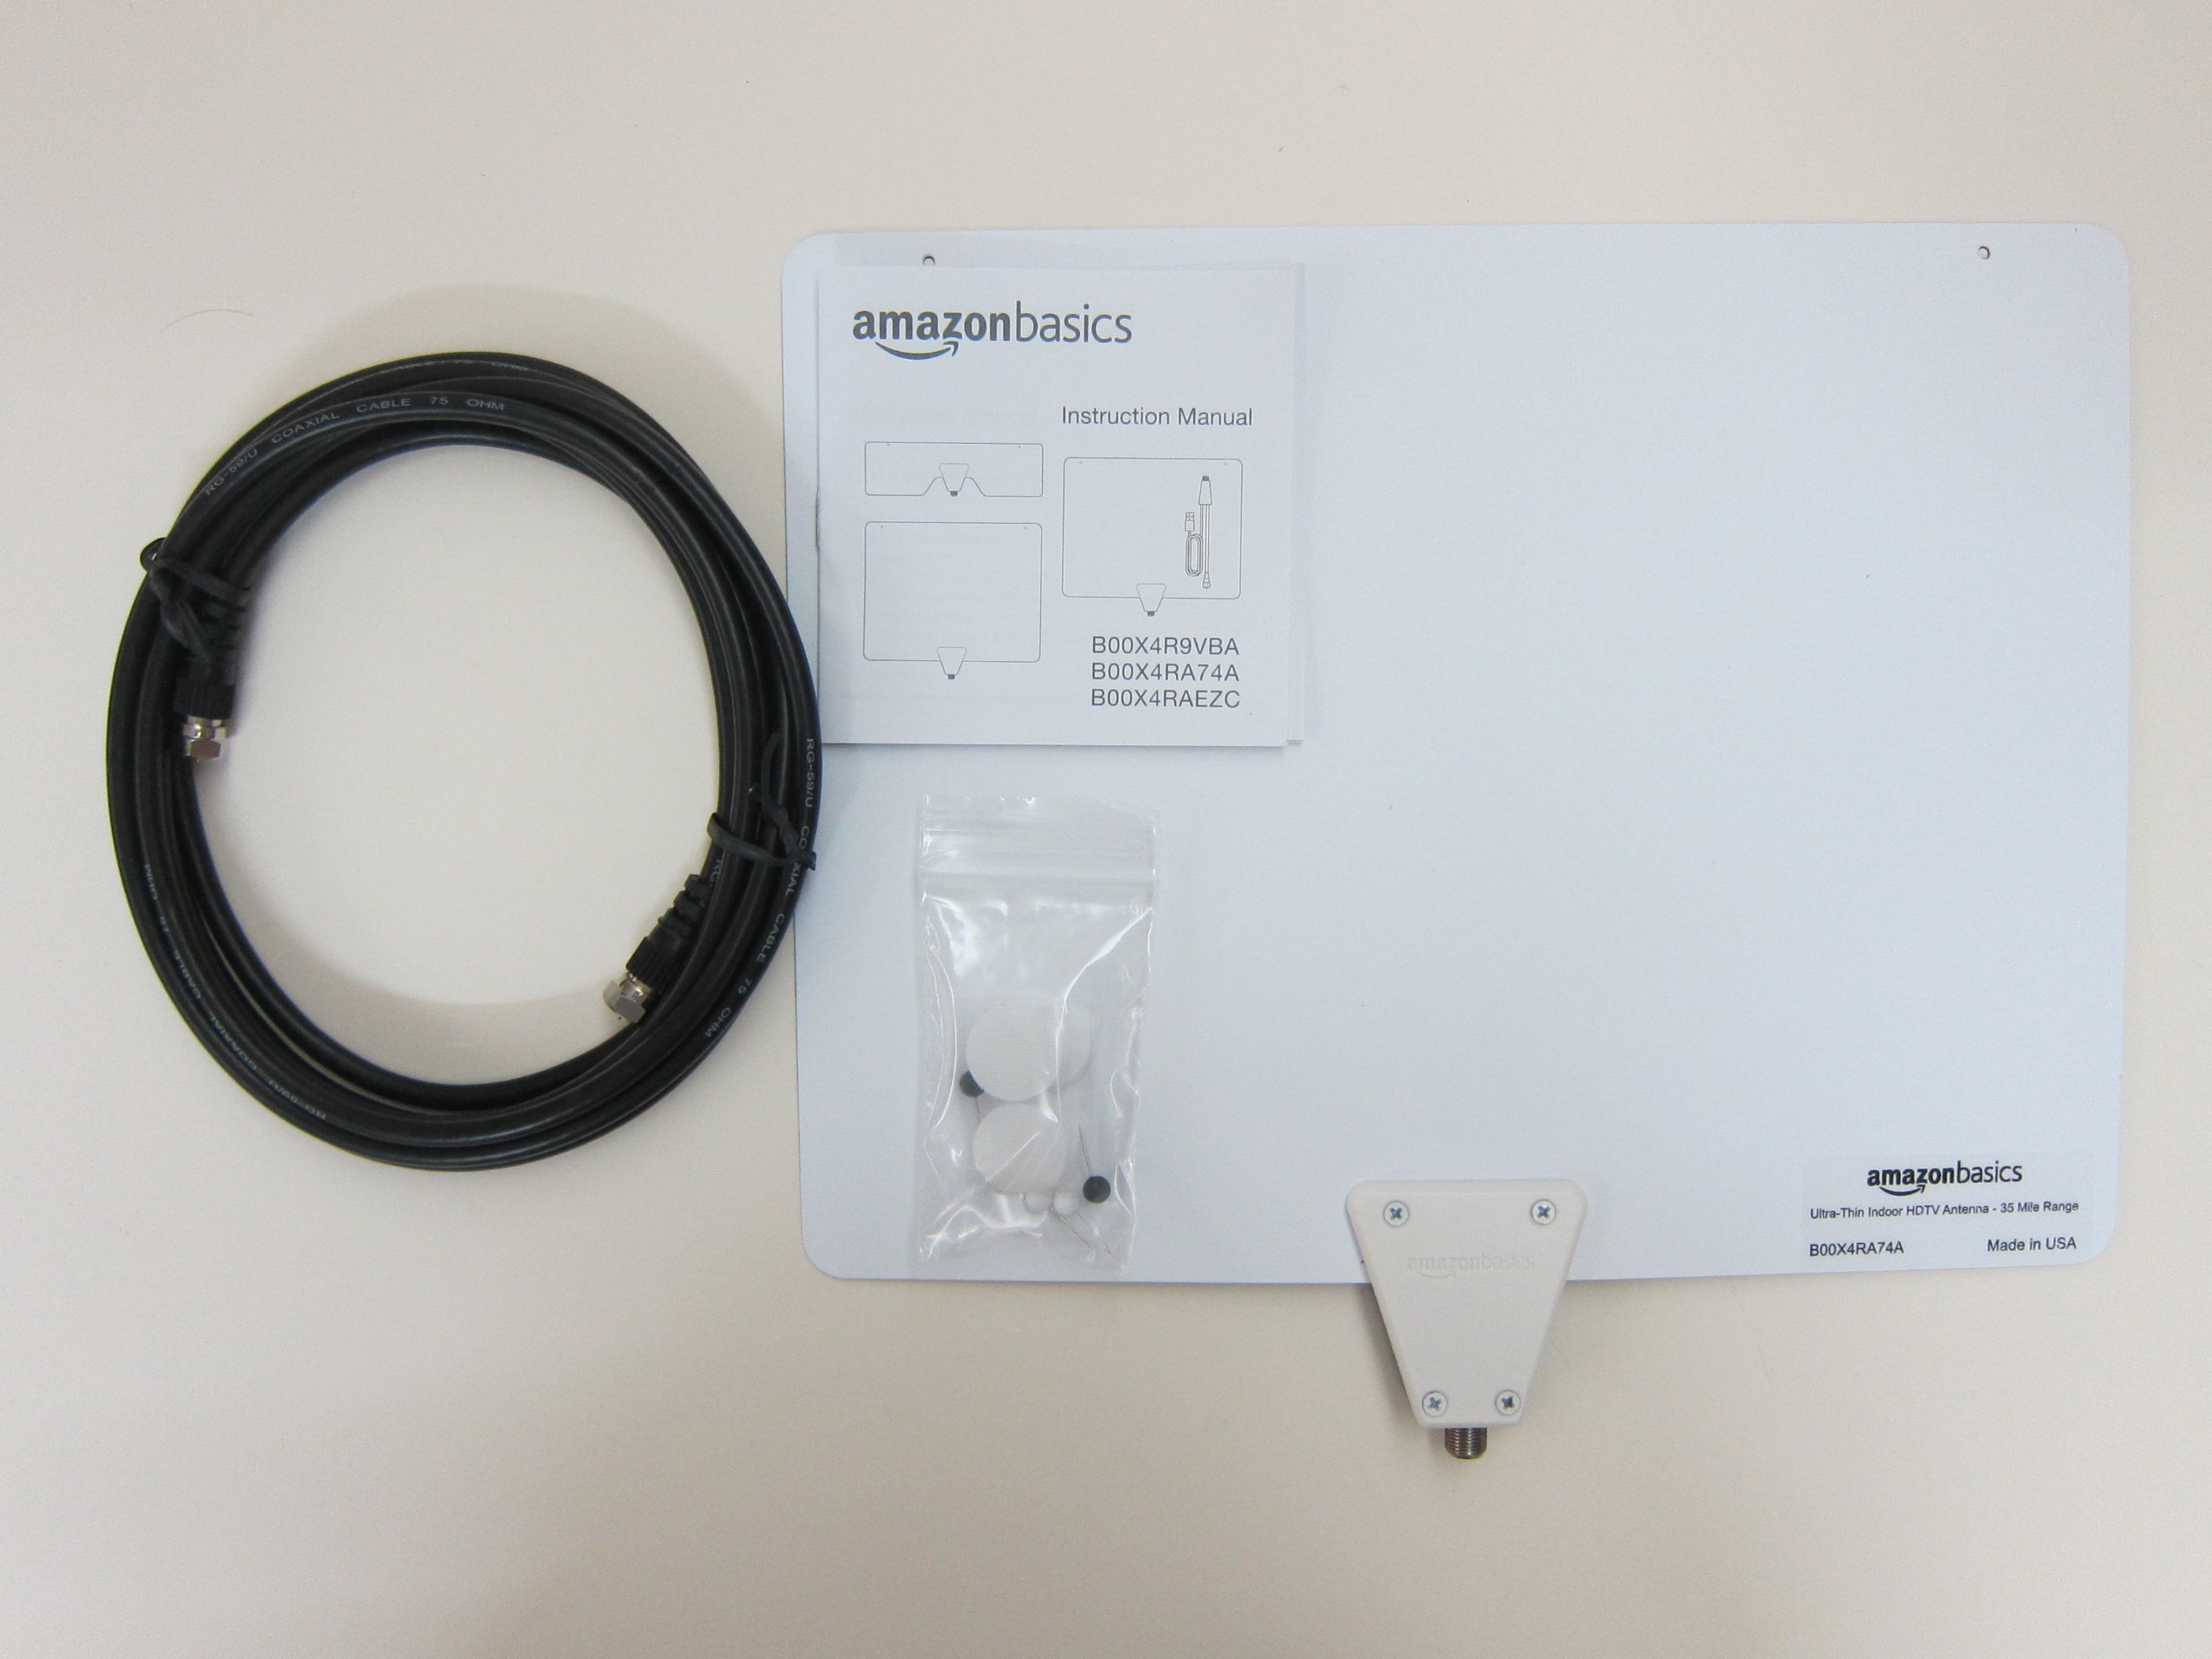 samsung tv antenna adapter. amazonbasics ultra thin indoor tv antenna - box contents samsung tv adapter